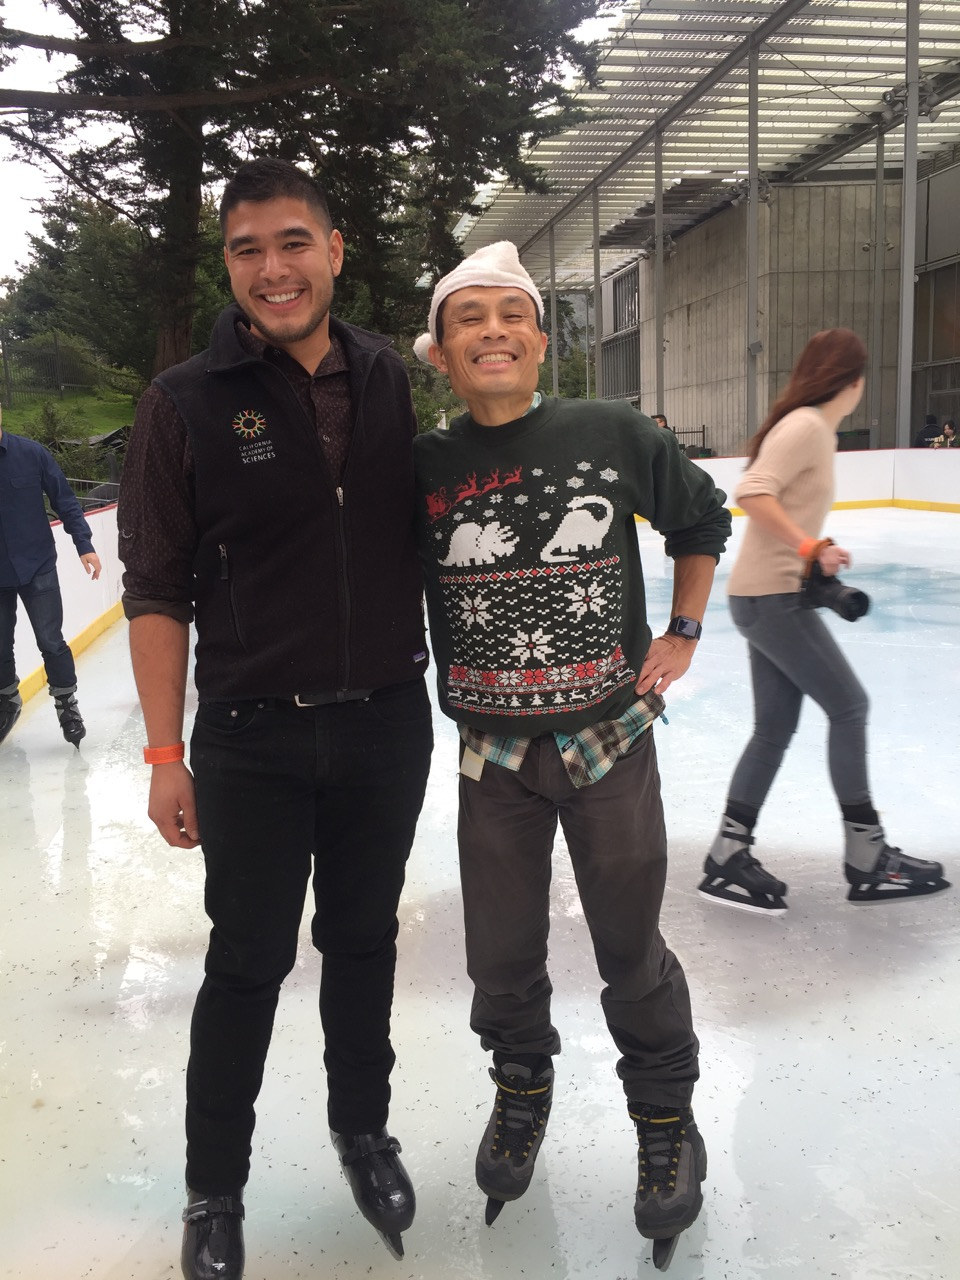 Rik and Dennis on ice